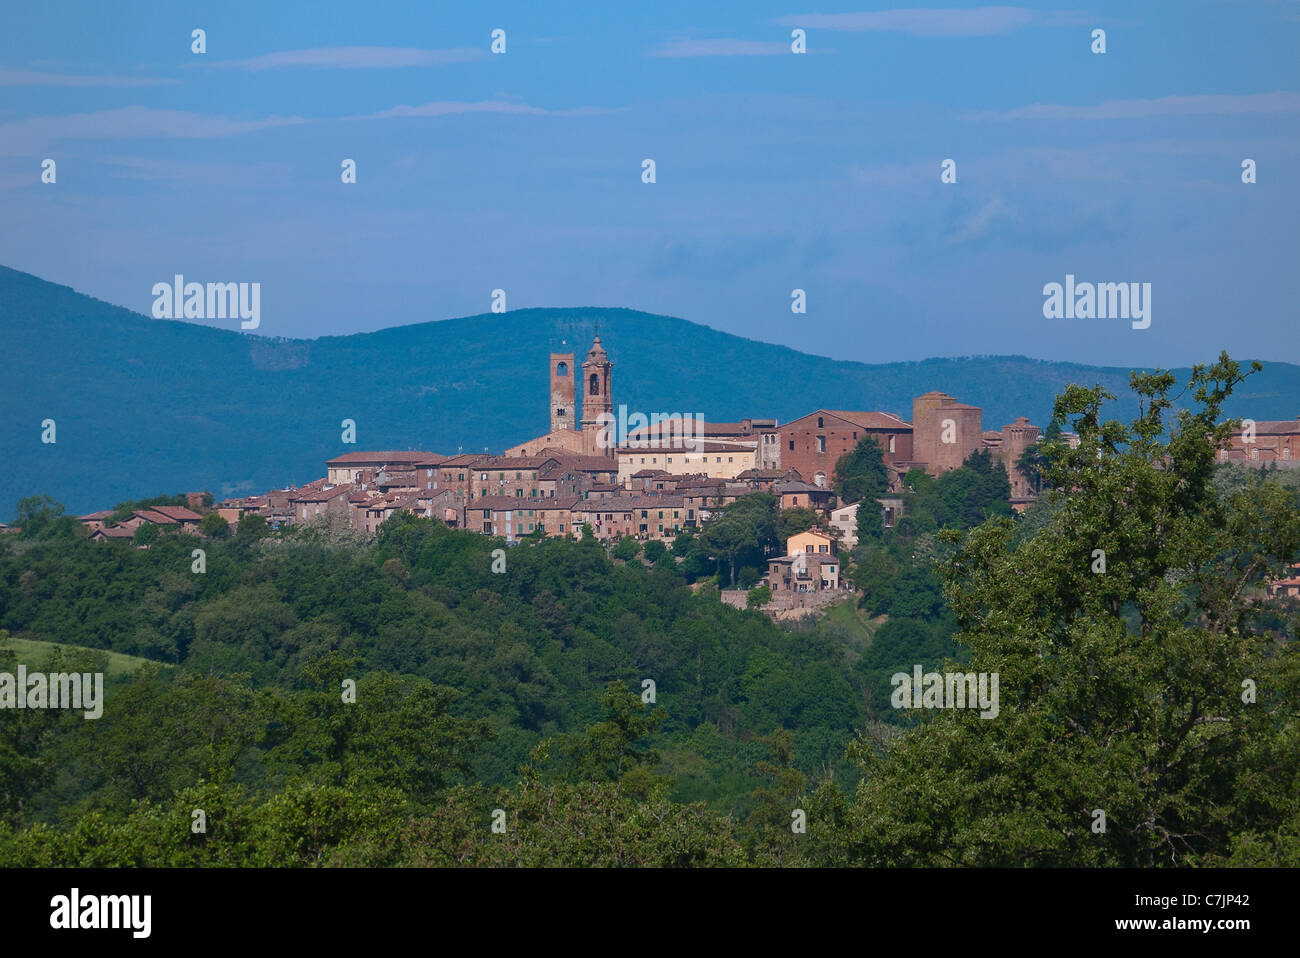 Distant view of the skyline of the medieval walled Umbrian town of Citta della Pieve, Italy. - Stock Image